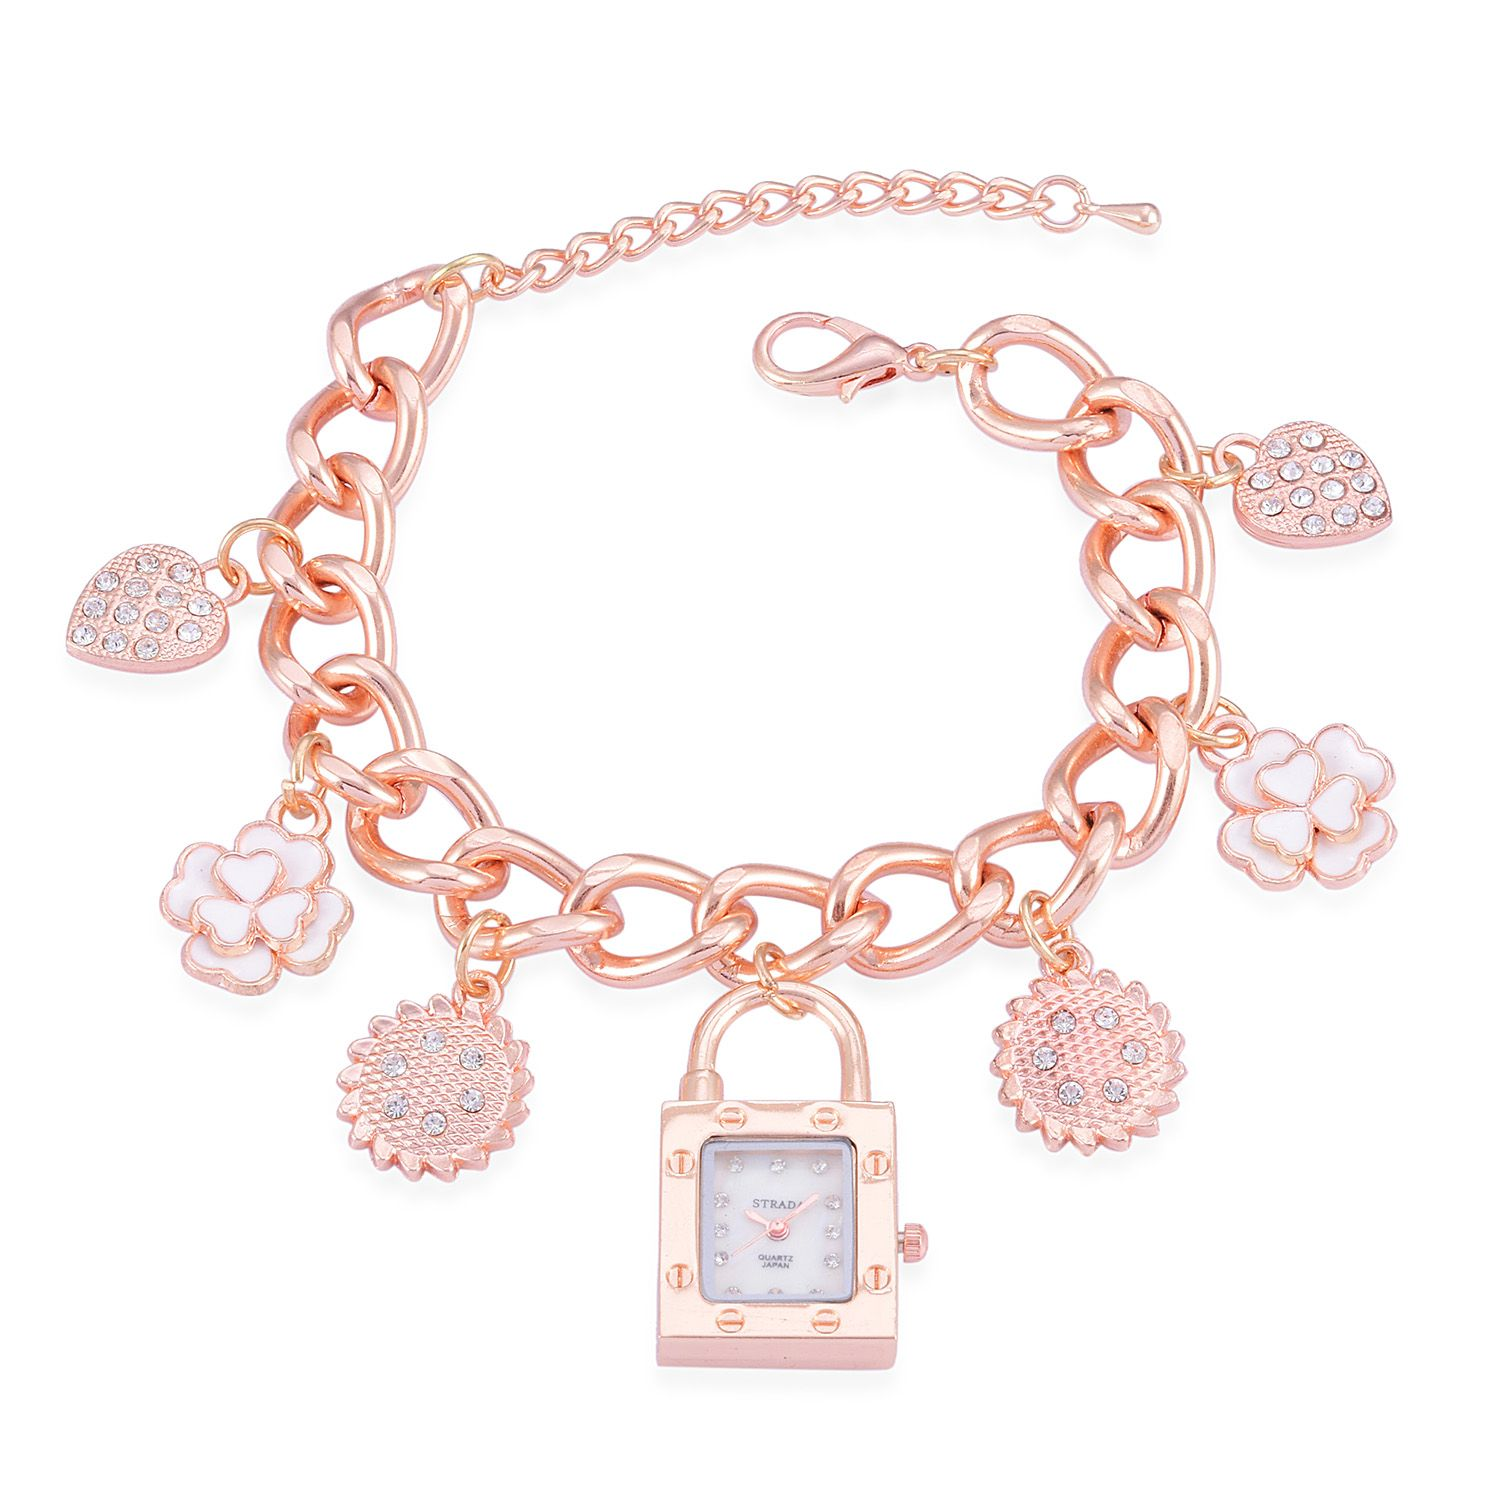 STRADA Austrian Crystal Japanese Movement Charm Watch in Rosetone (8.5-11 in)